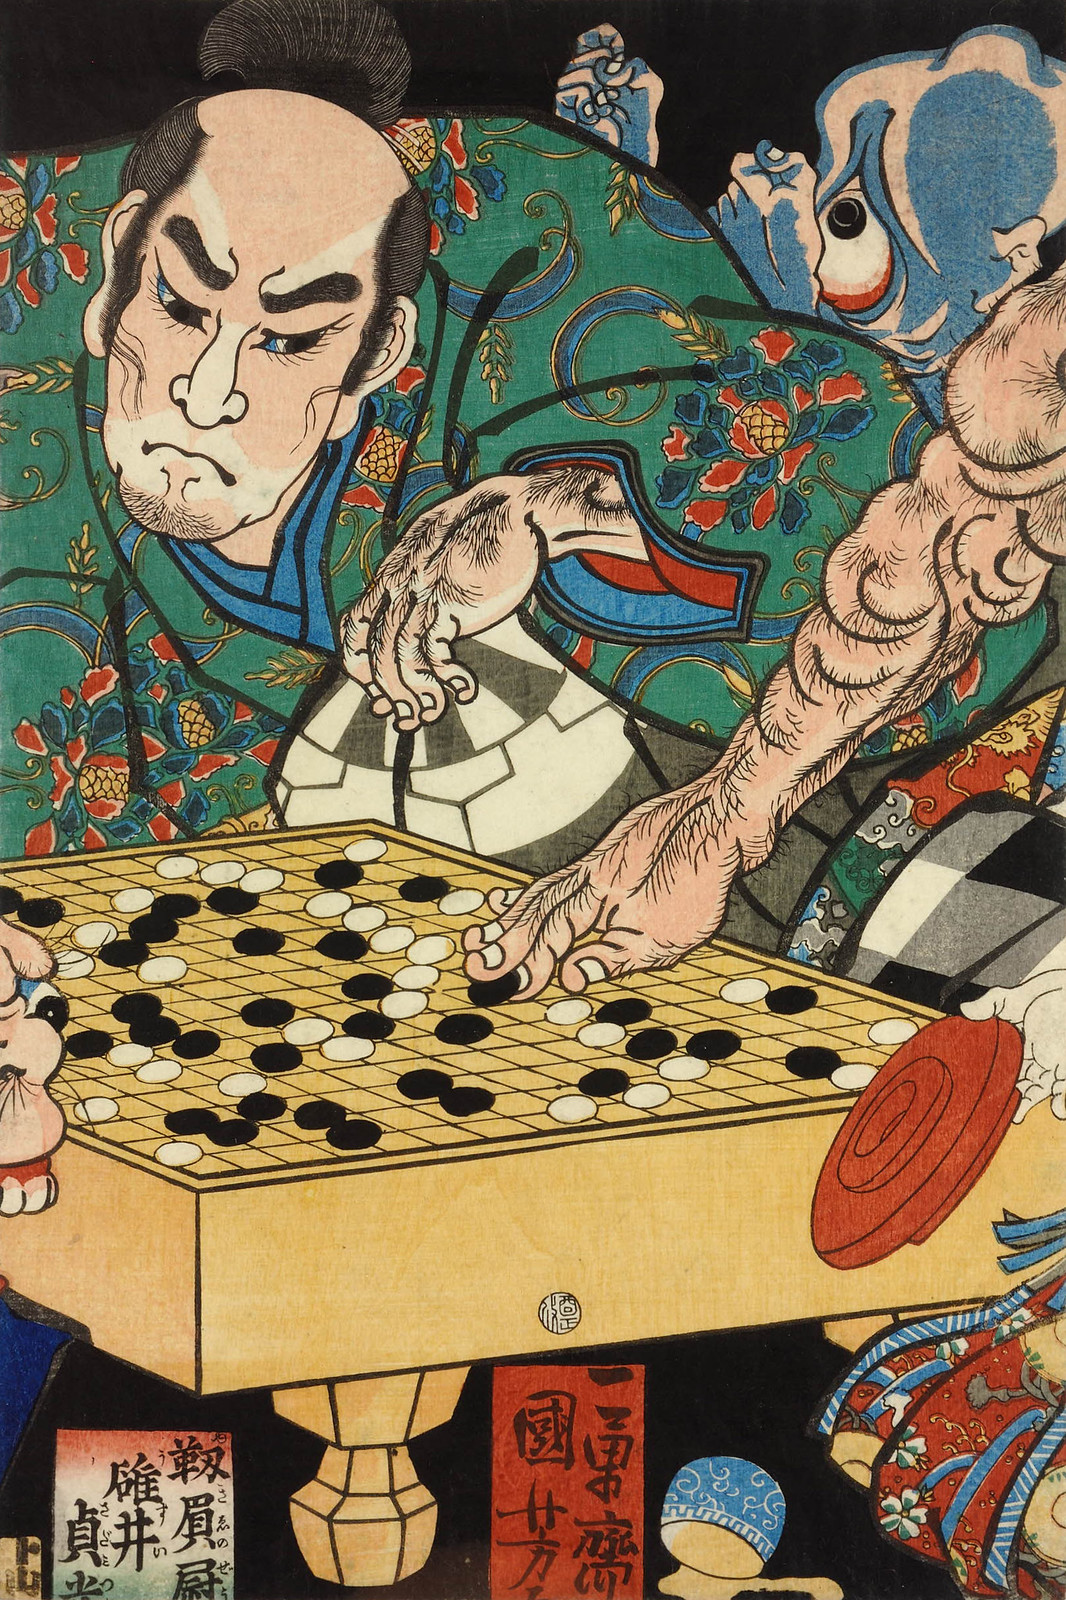 Utagawa Kuniyoshi - Raiko's retainers, Watanabe no Tonna, Sadanobu, and Kunitoki, playing go, with attempted interruptions by the Earth-Spider's demons. Edo Period (middle panel)